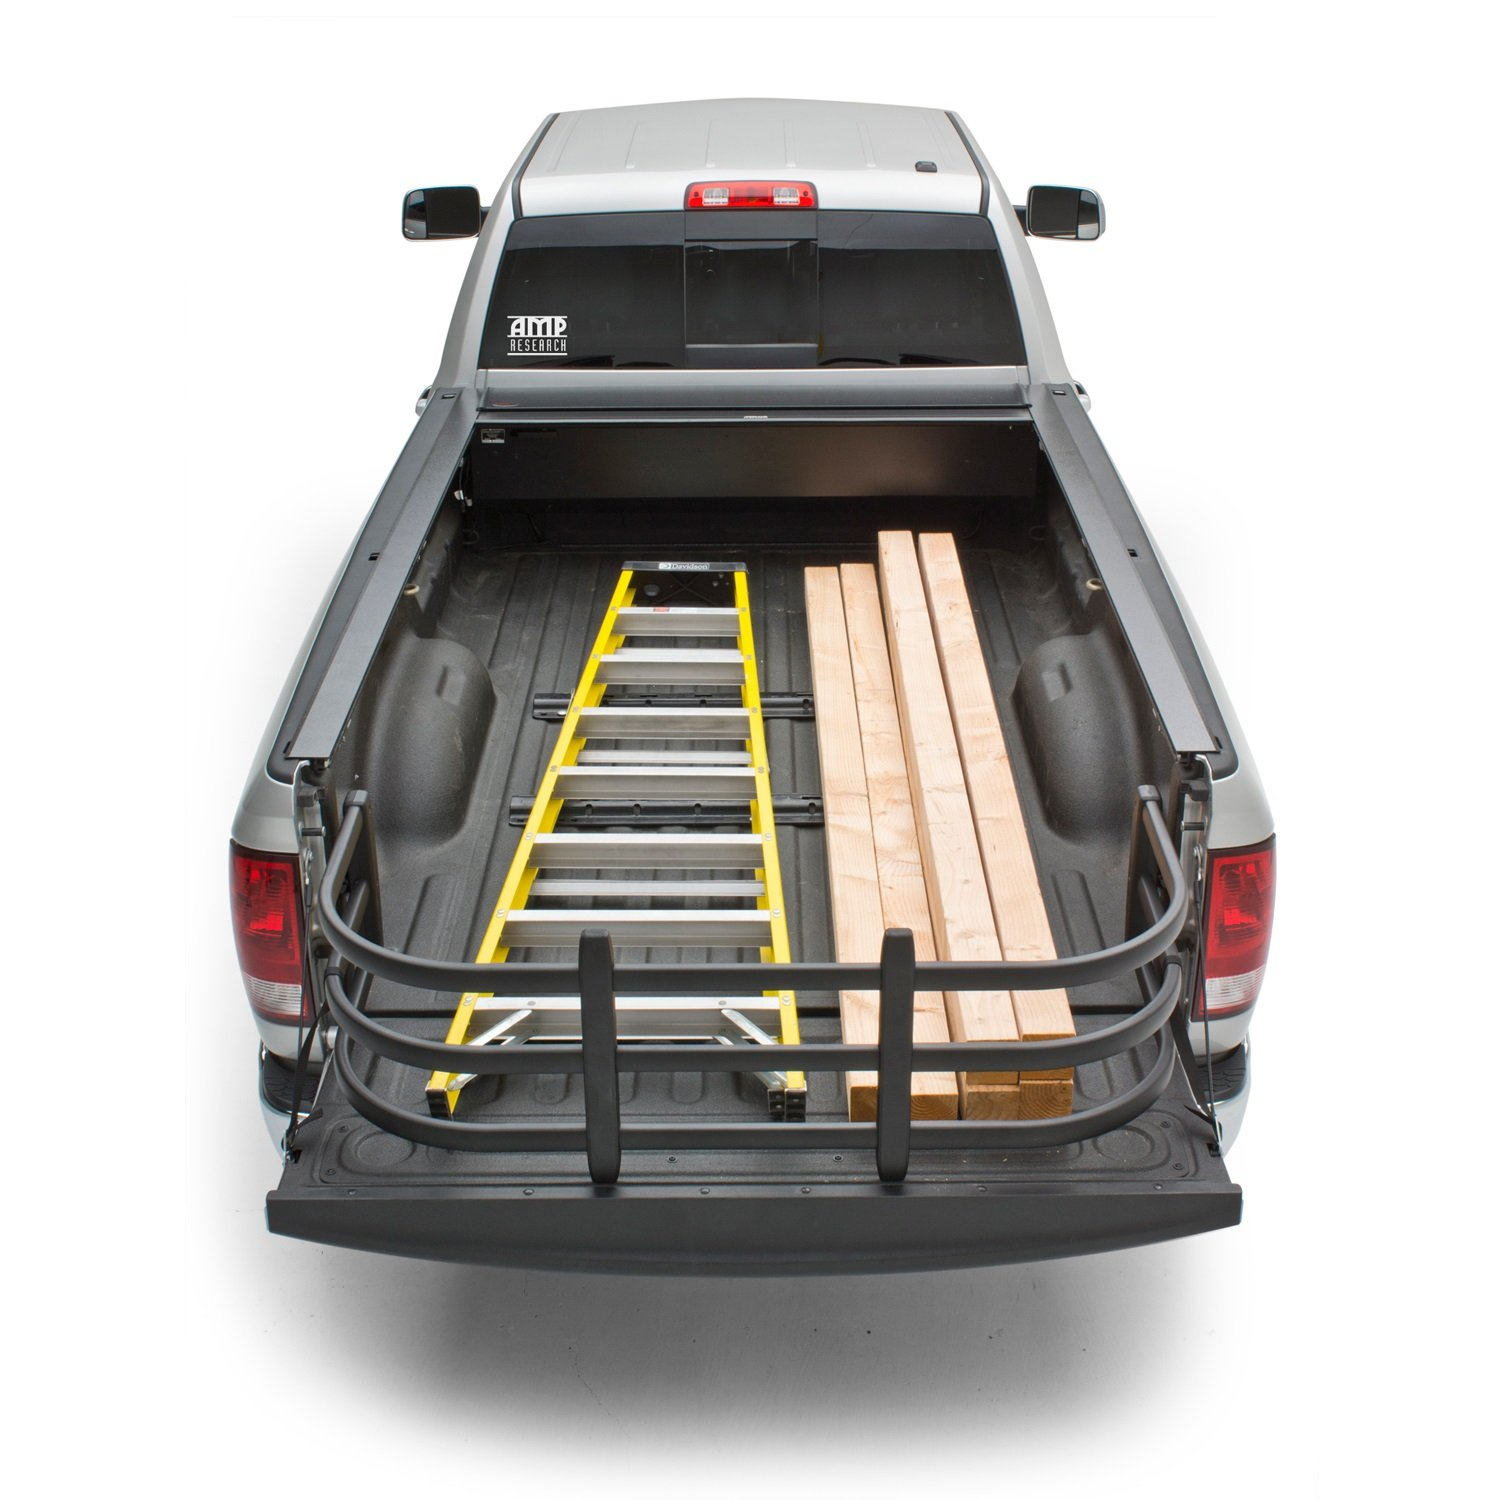 Truck with Bed Extender, Truck Bed Has a Ladder and Lumber